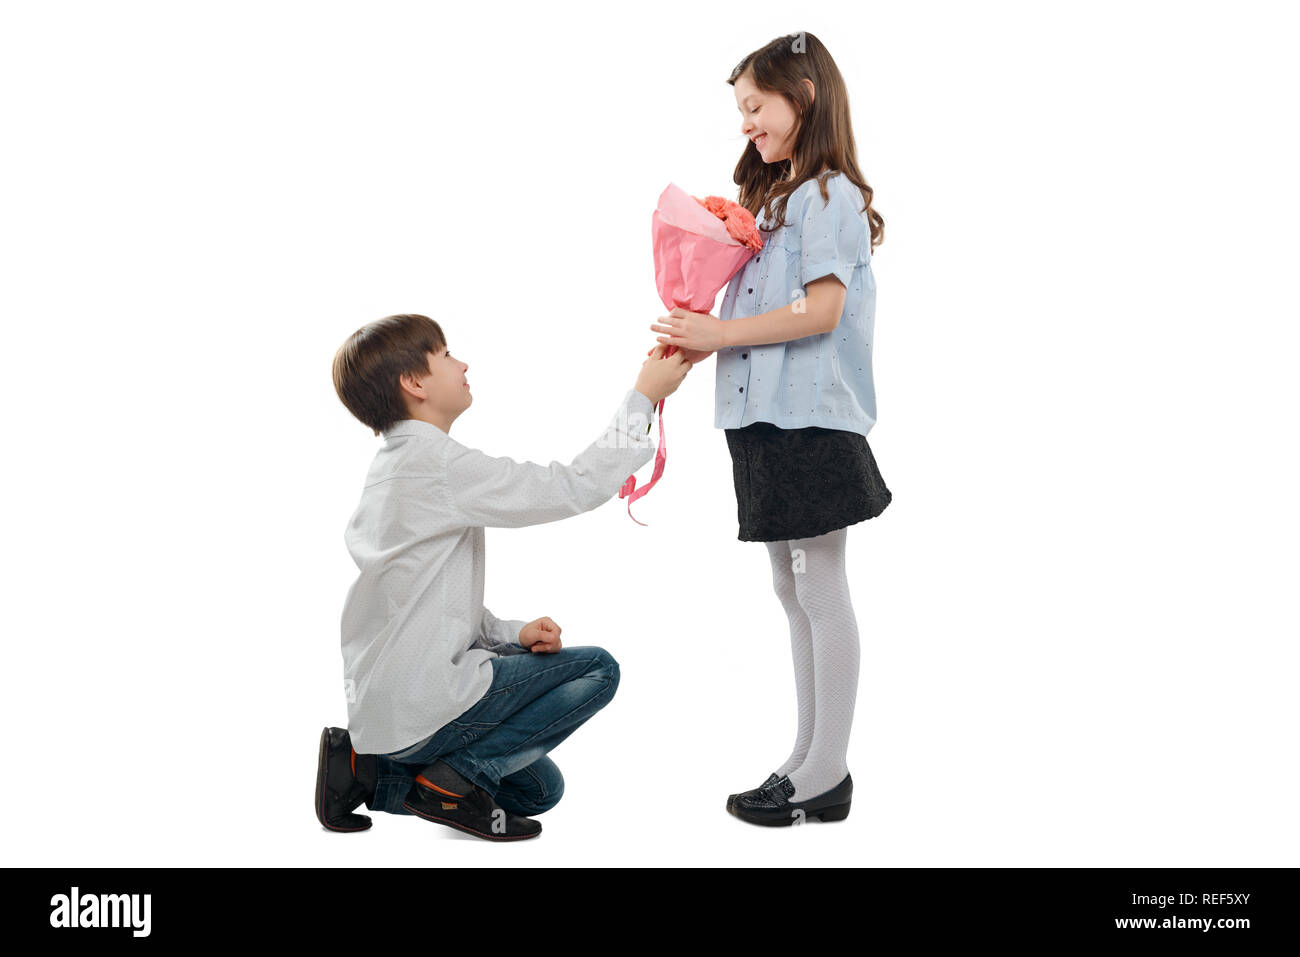 Girl received bouquet of flowers - Stock Image